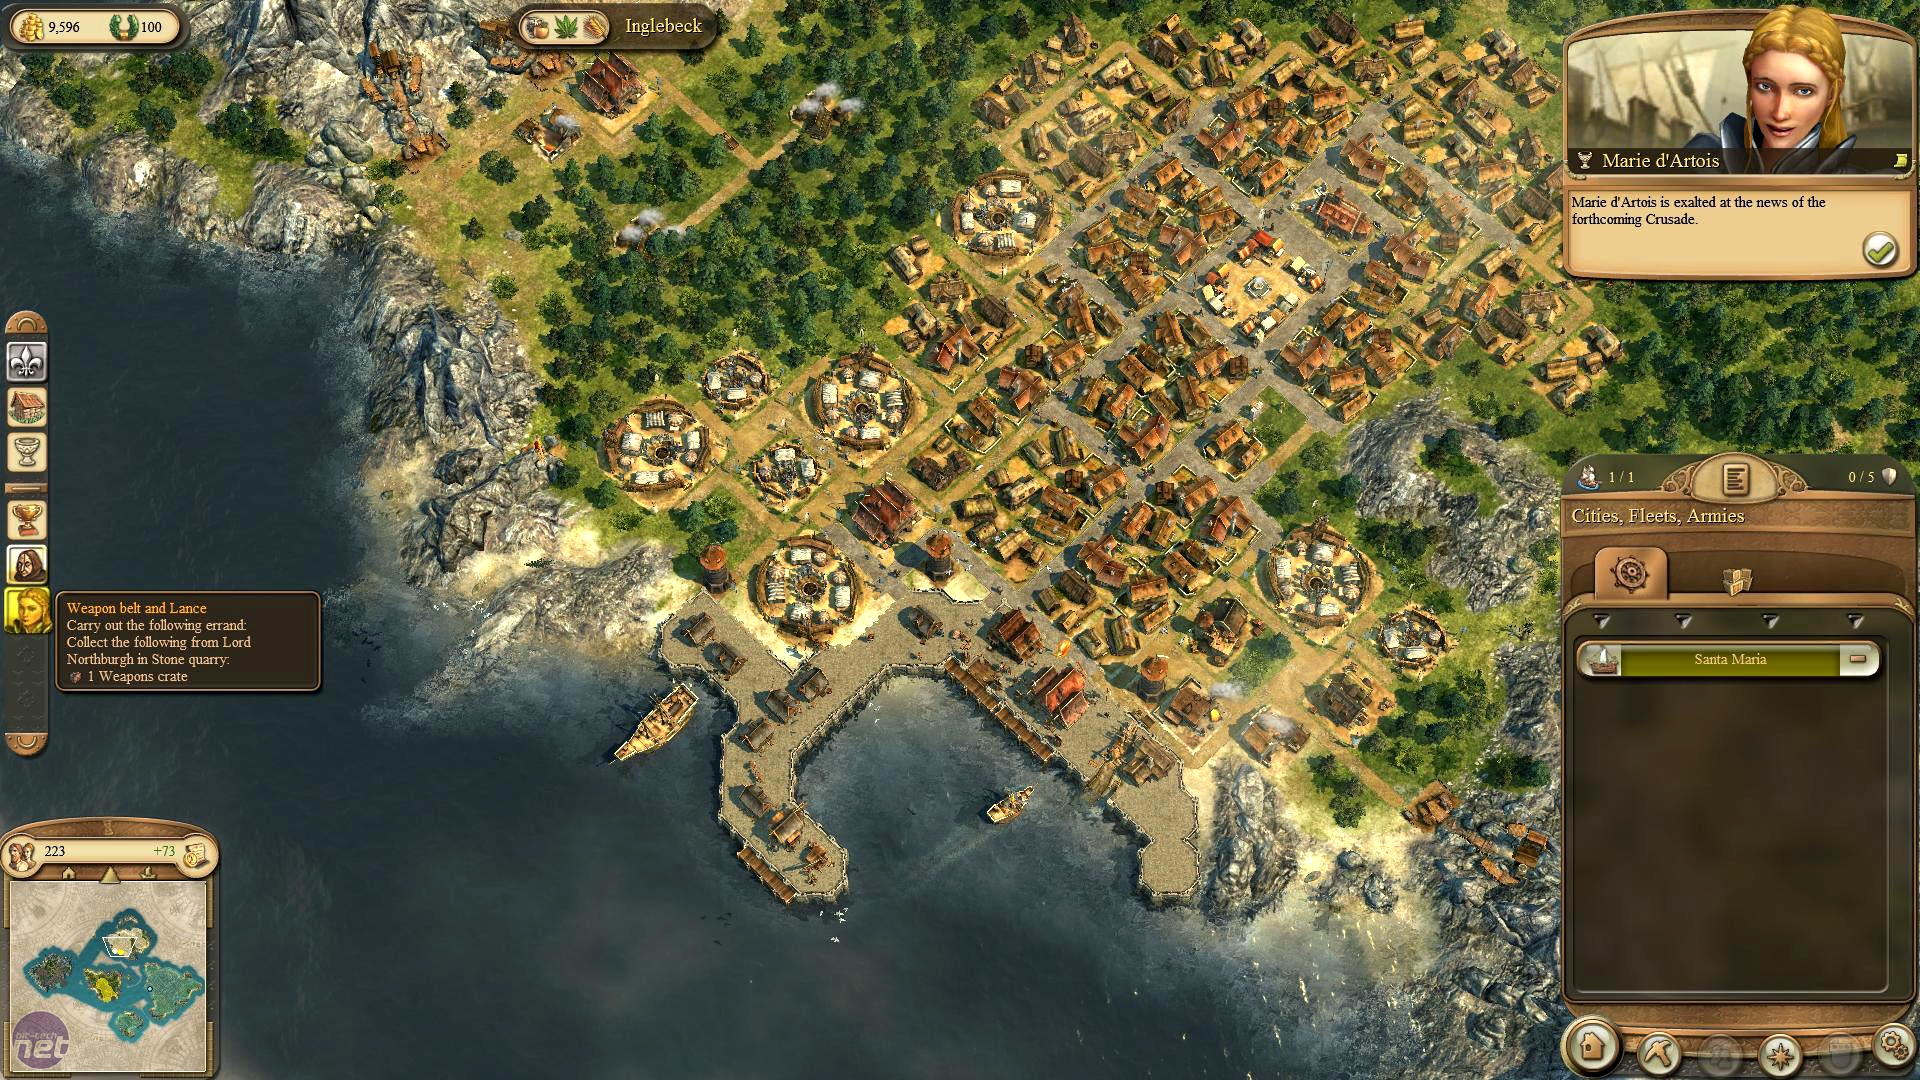 http://images.bit-tech.net/content_images/2009/06/anno-1404-dawn-of-discovery-review/anno_1404_25.jpg